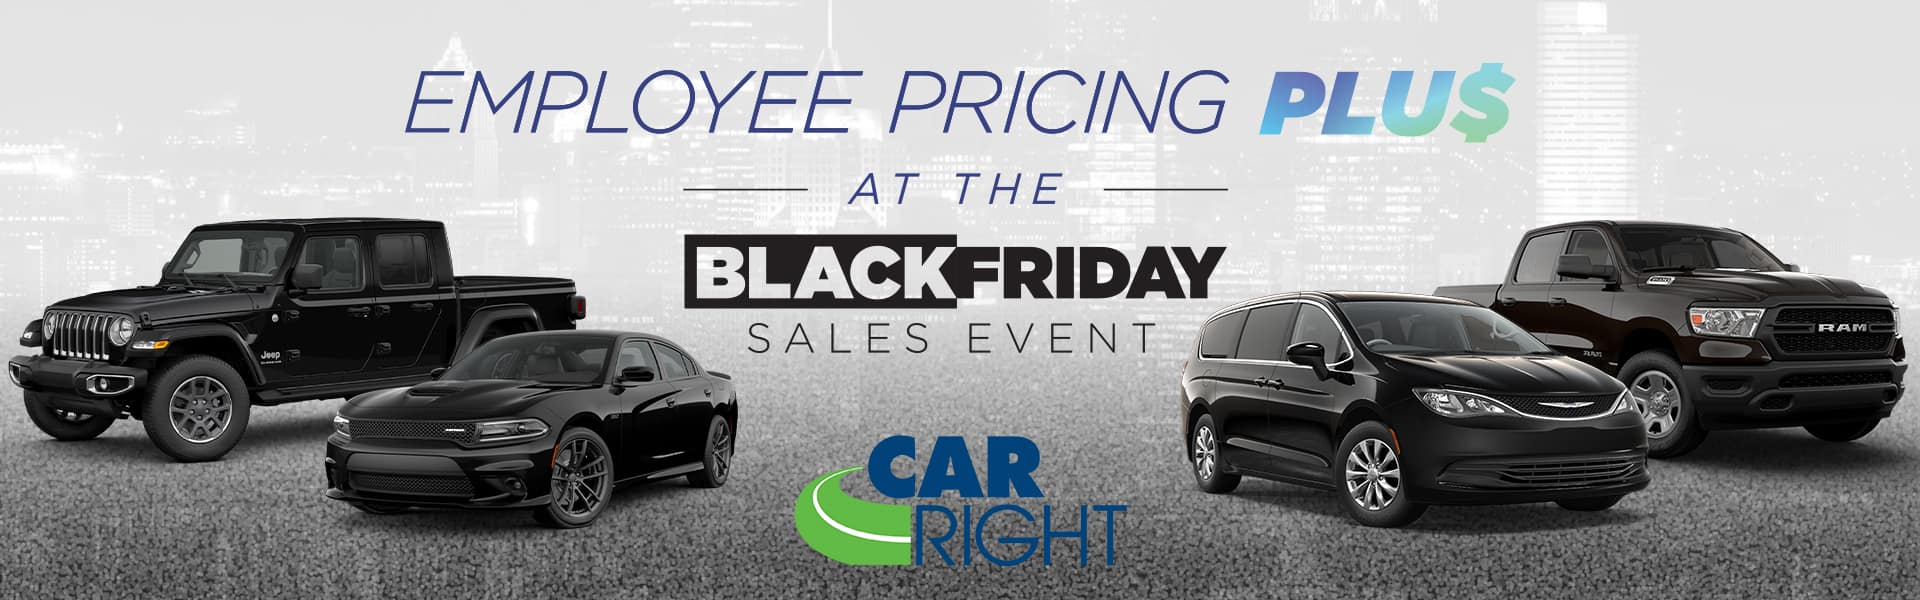 Carright moon township Chrysler dodge jeep ram employee pricing Black Friday sales event